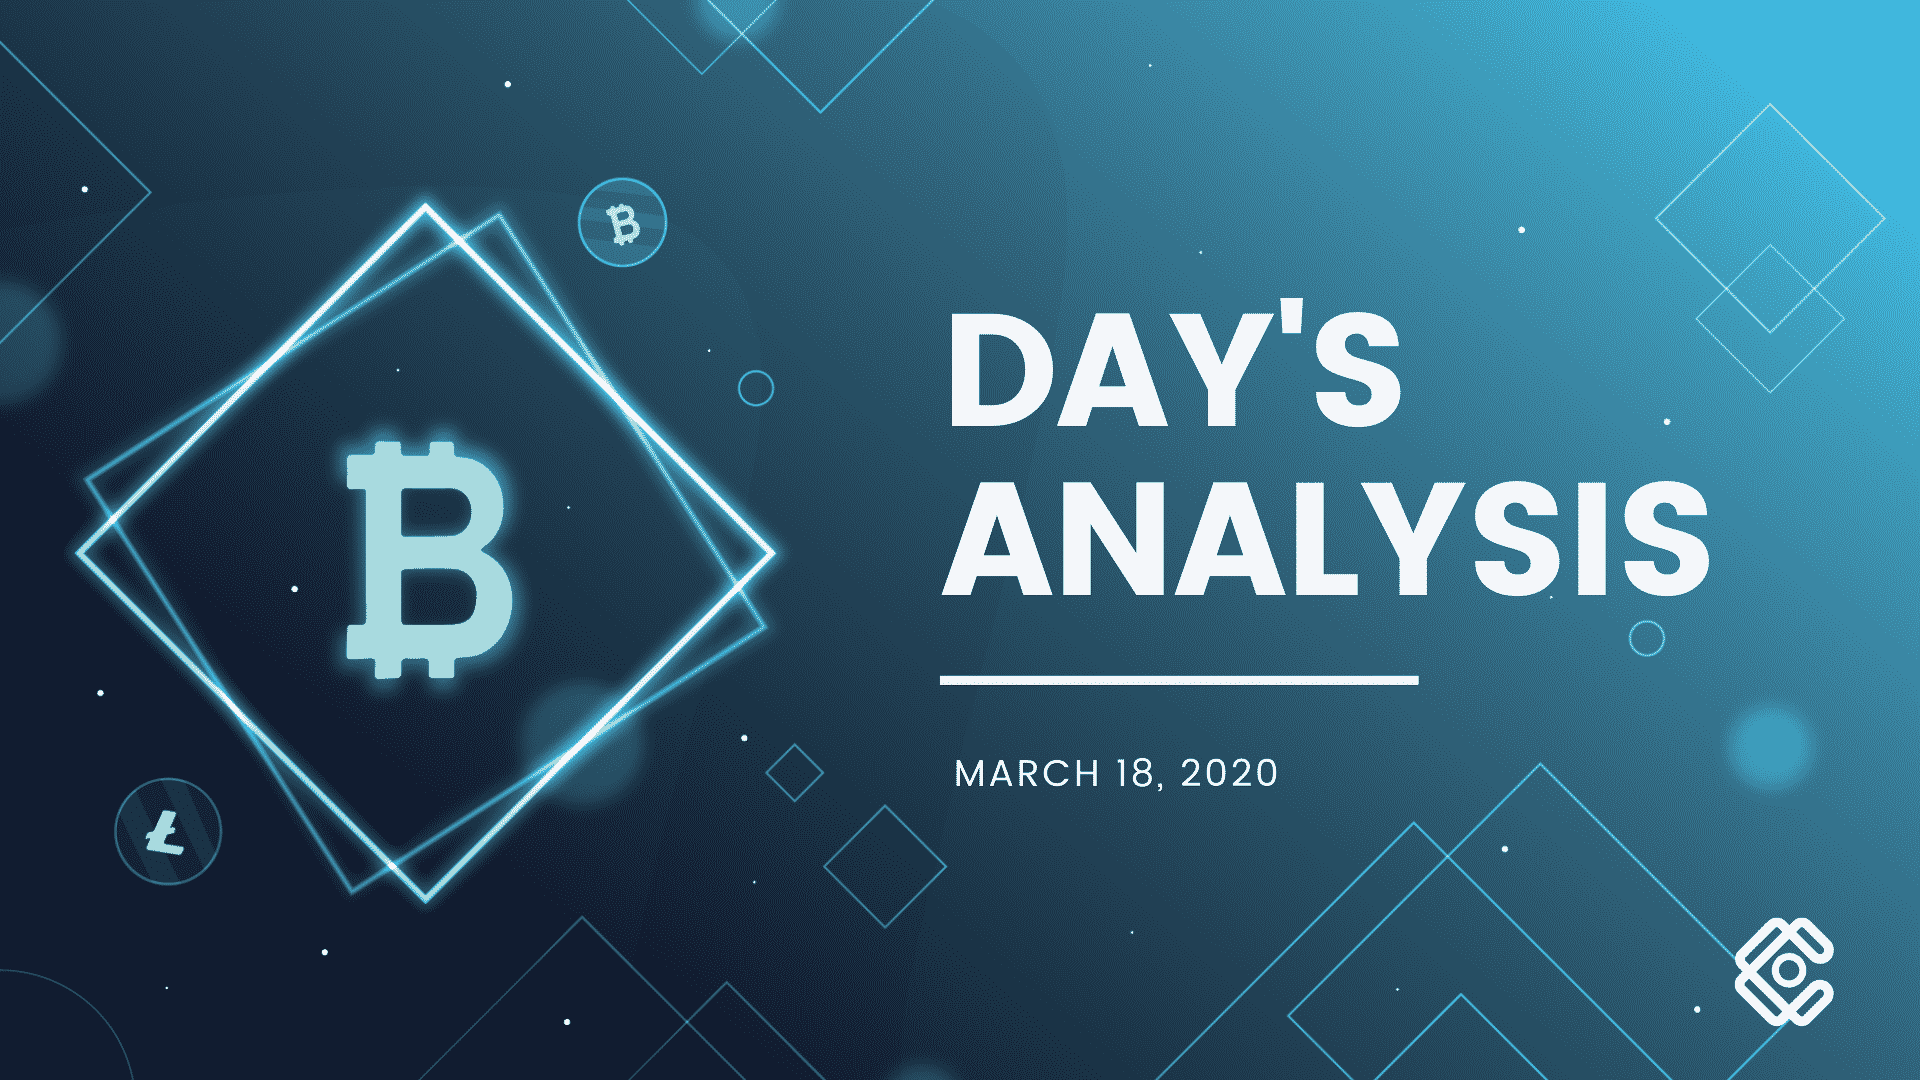 Market Analysis of March 18, 2020